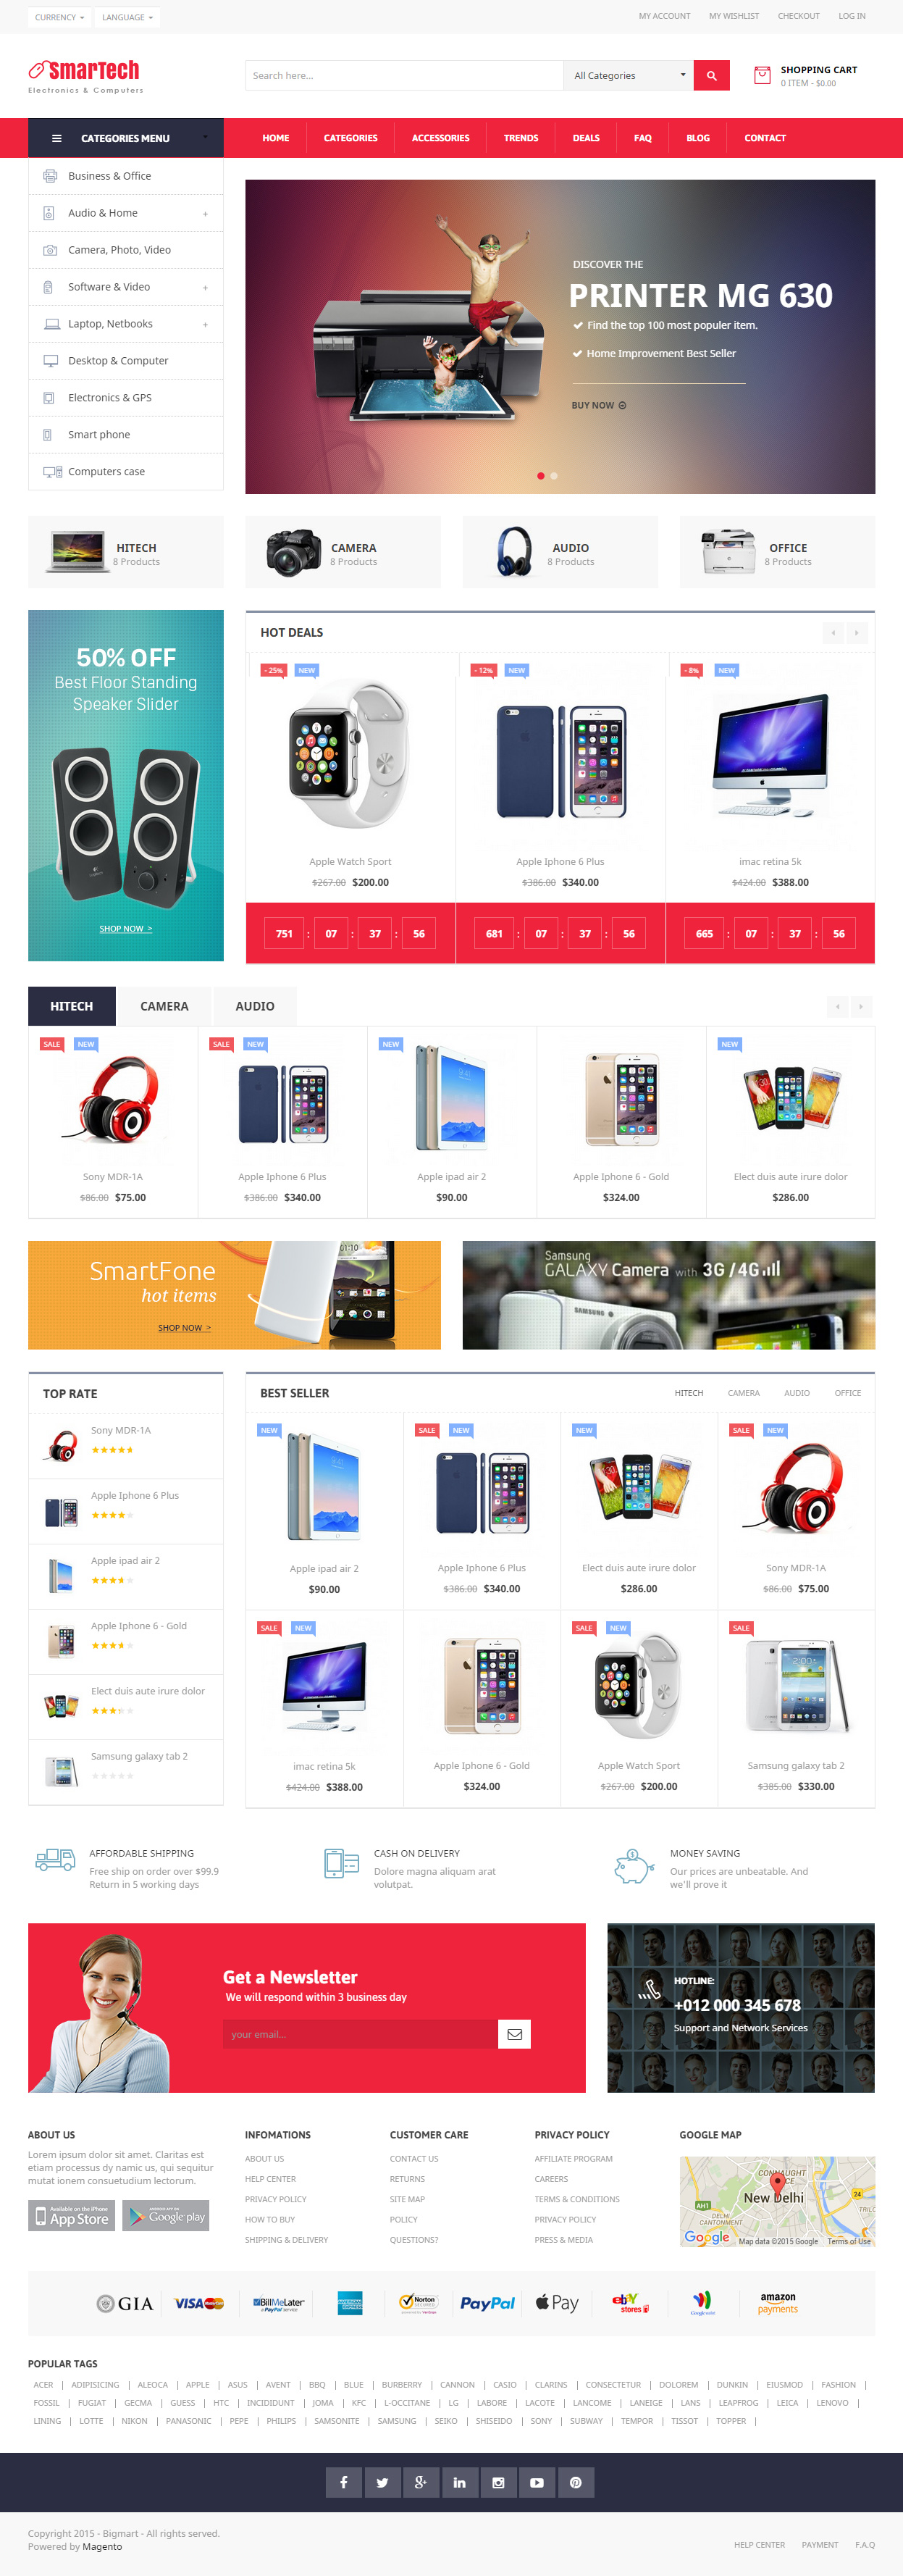 10 Best Responsive Magento Mobile Themes 2017 - Responsive Miracle